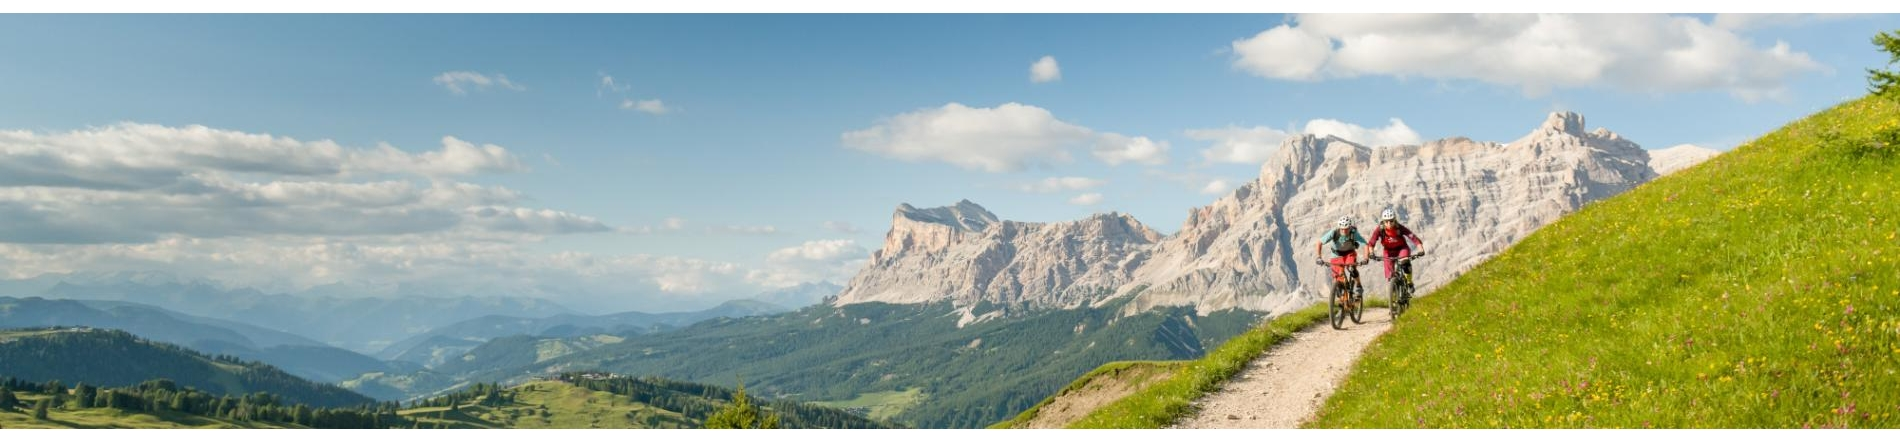 Dolomiti in mountainbike